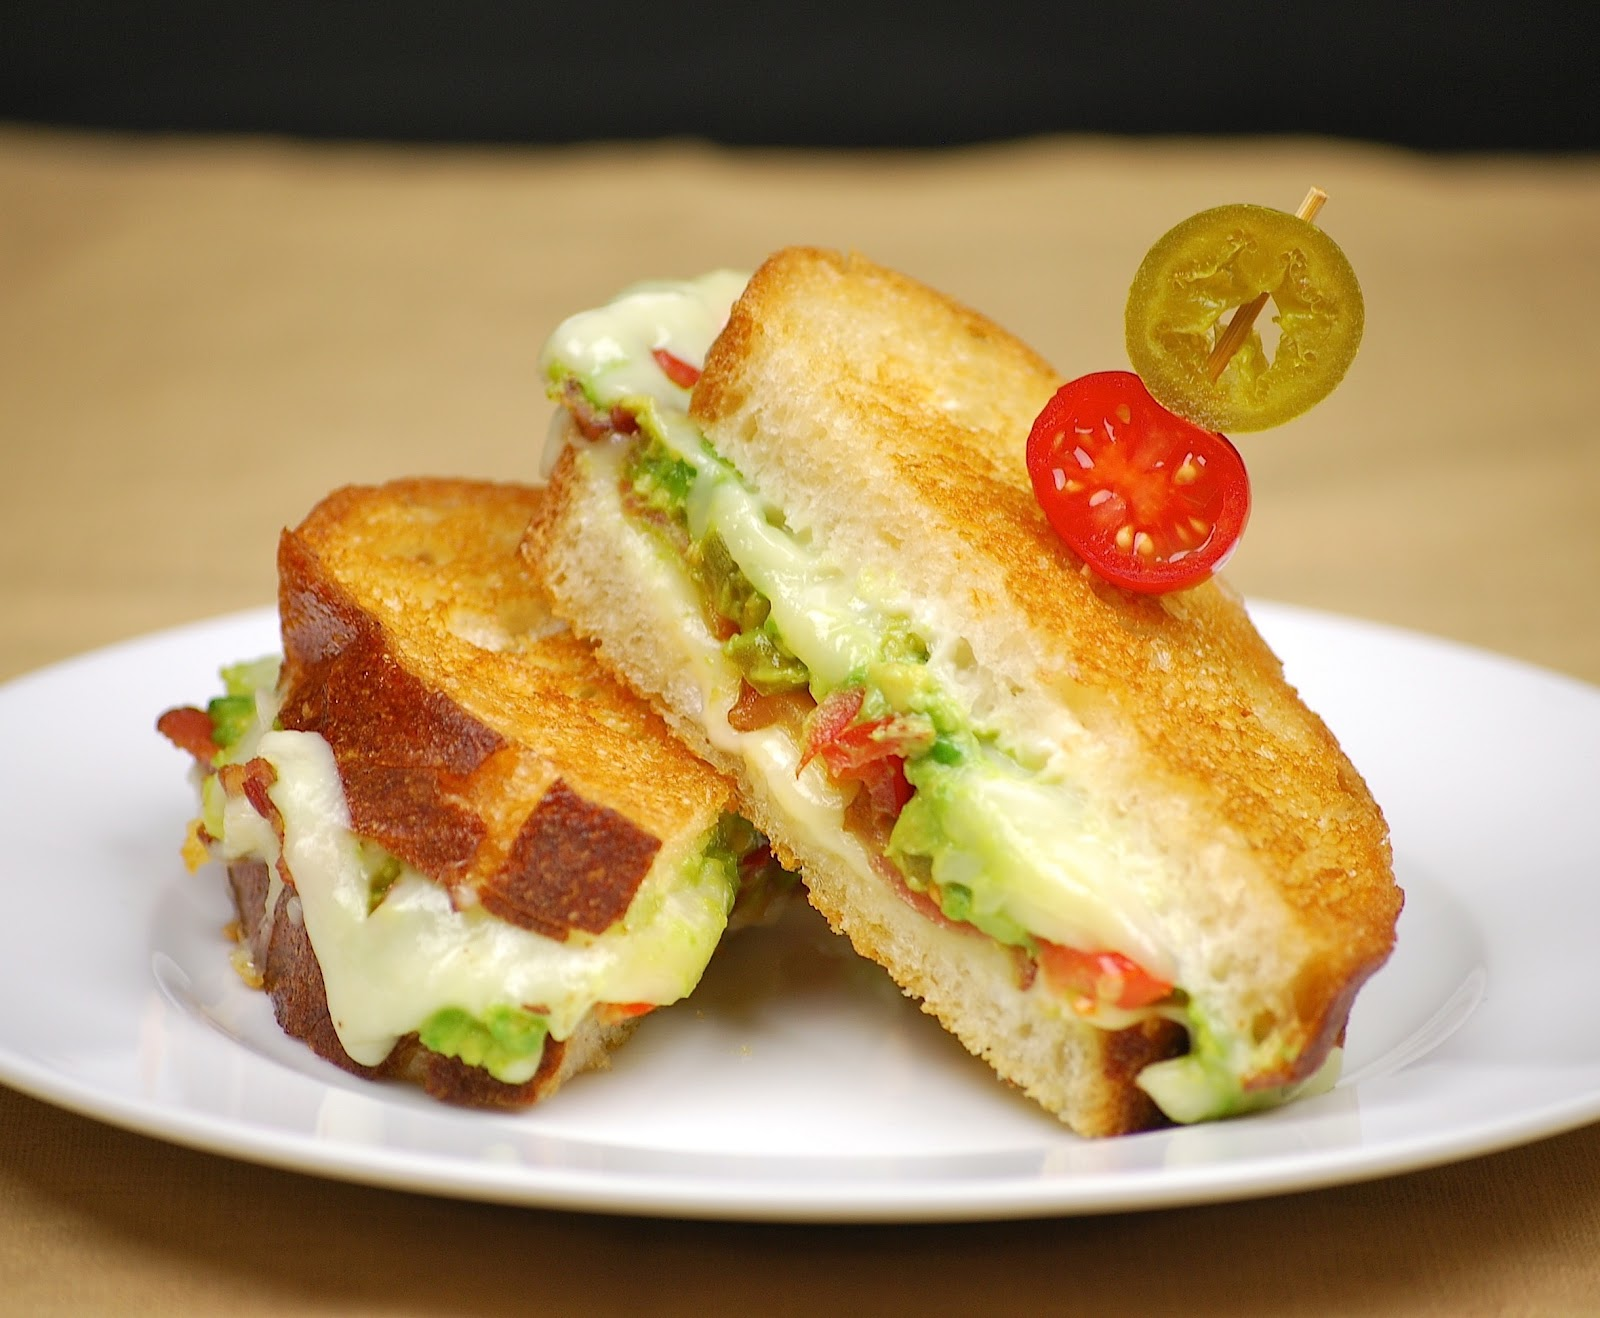 Tasty Trials: The blues and grilled cheese sandwiches